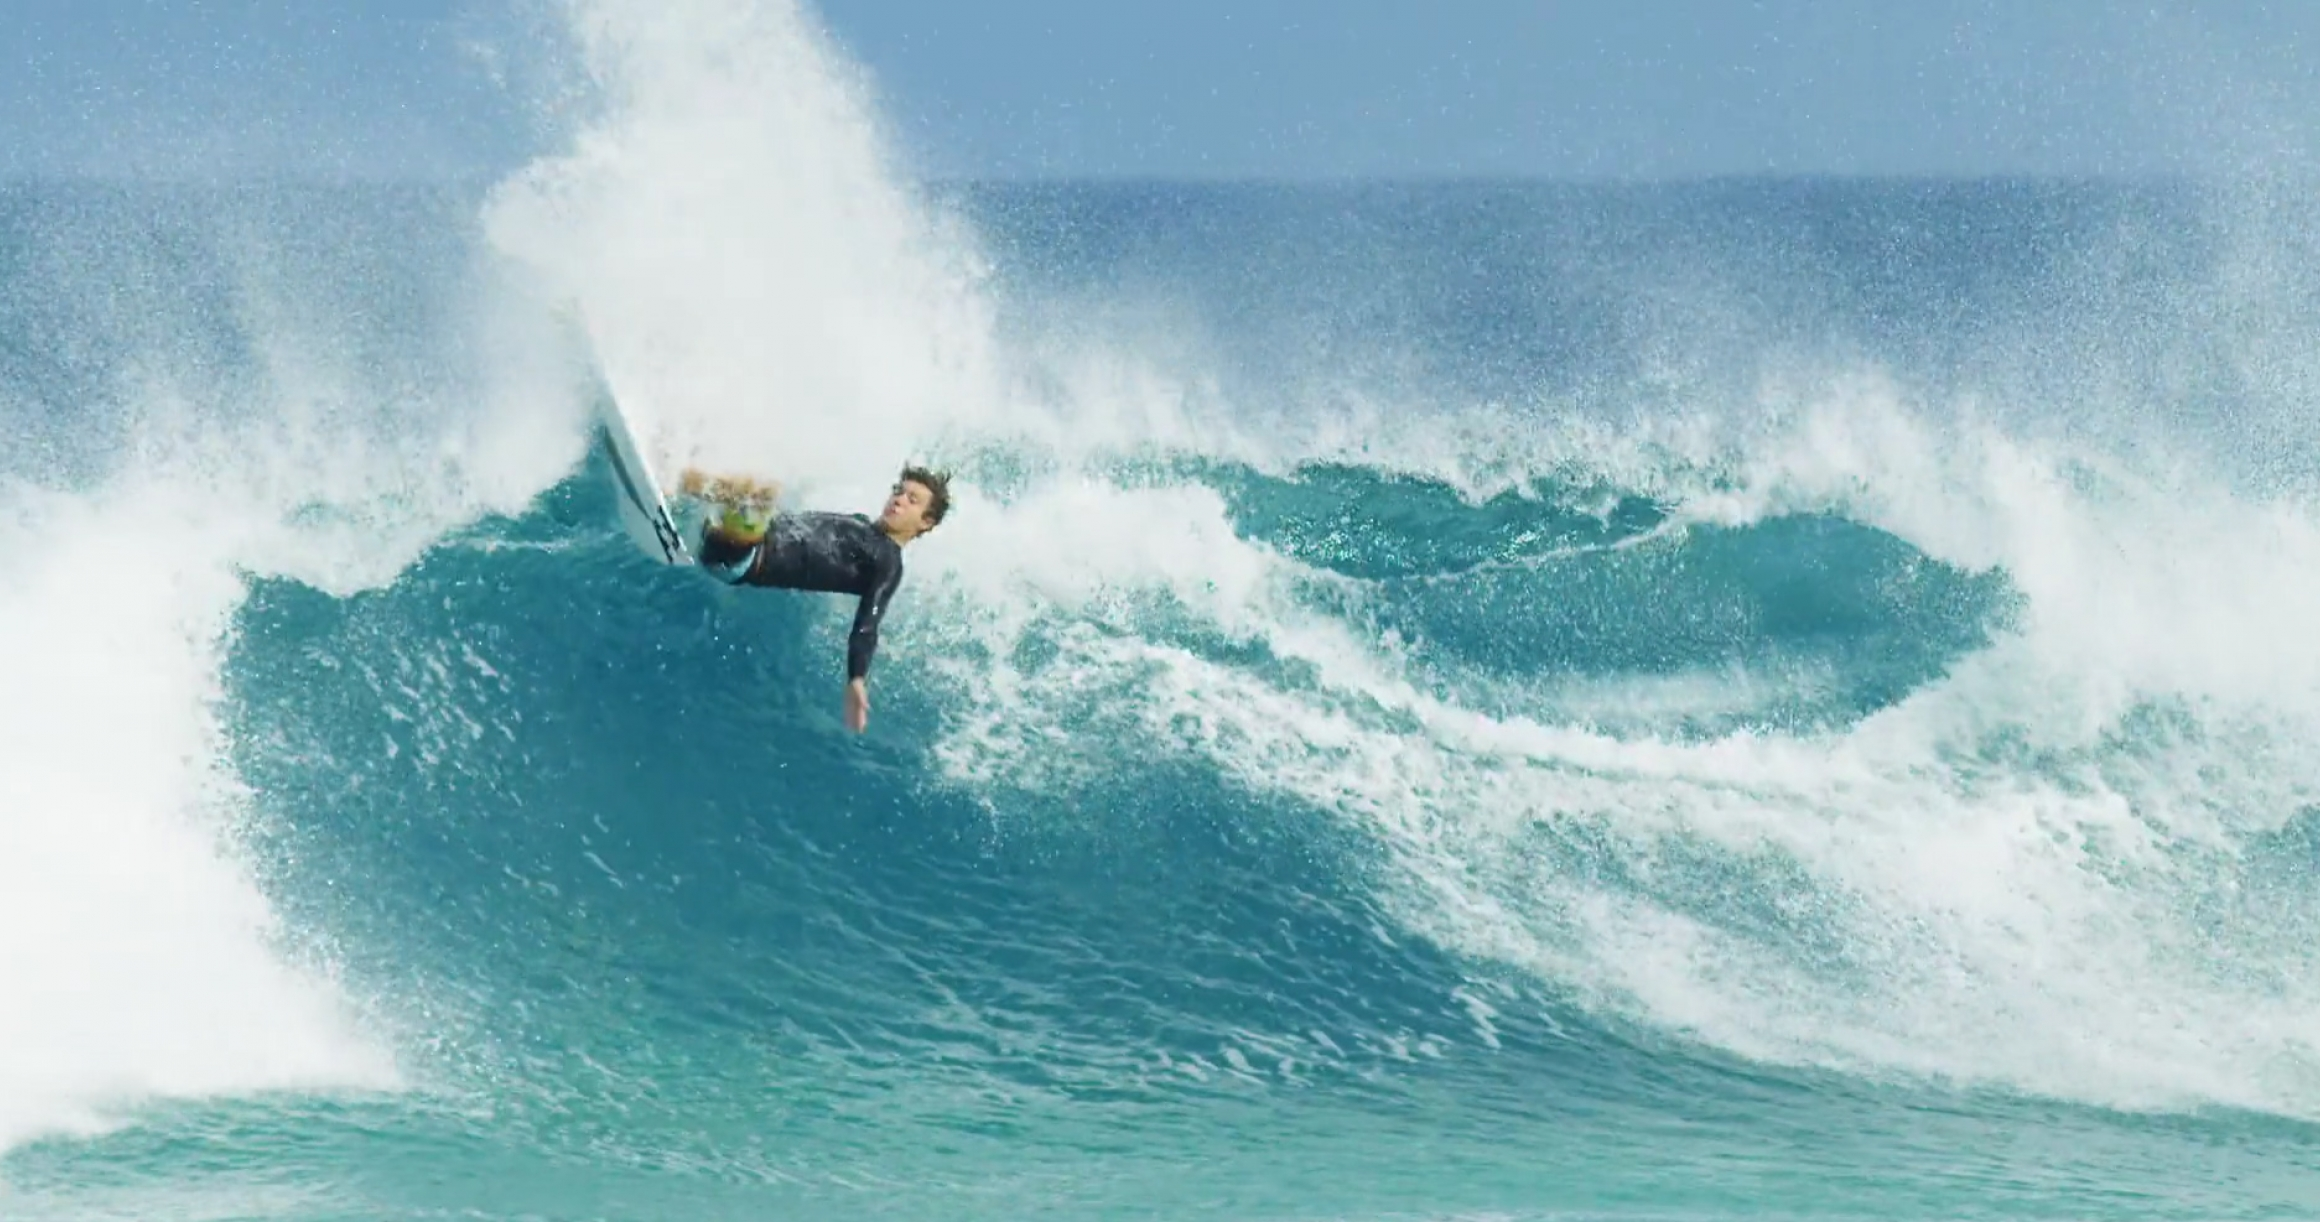 Griffin Colapinto's On The Up in 'Ding Donging ...